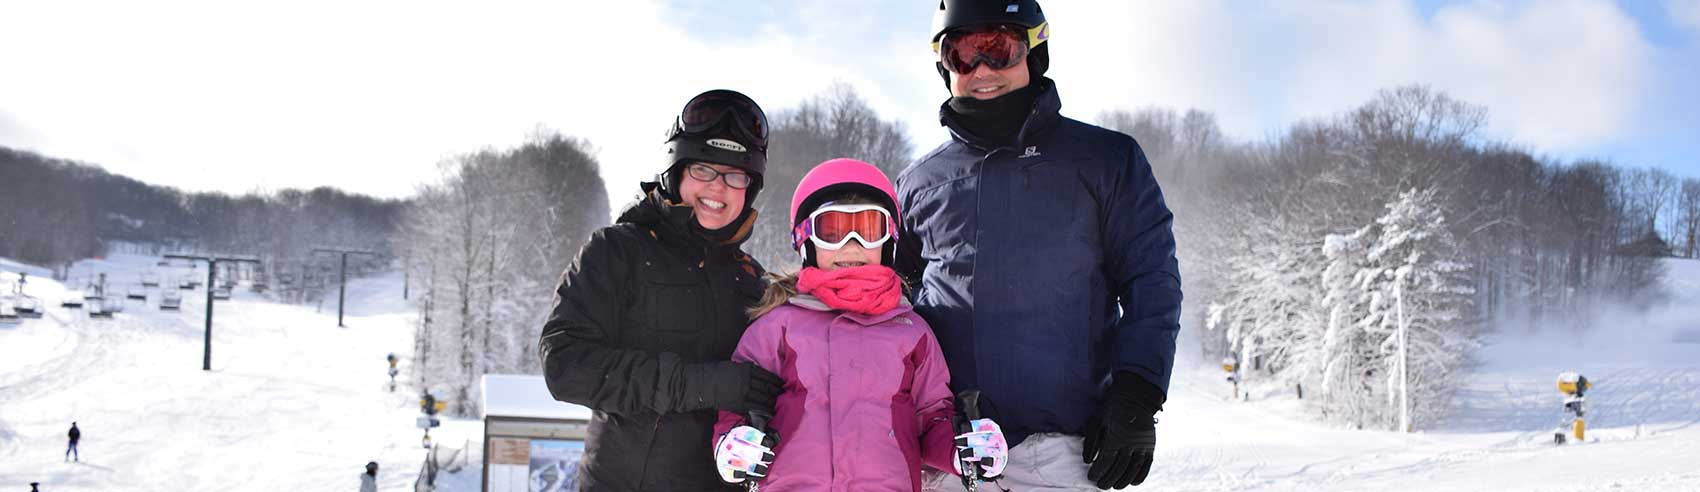 family-on-the-slopes-1